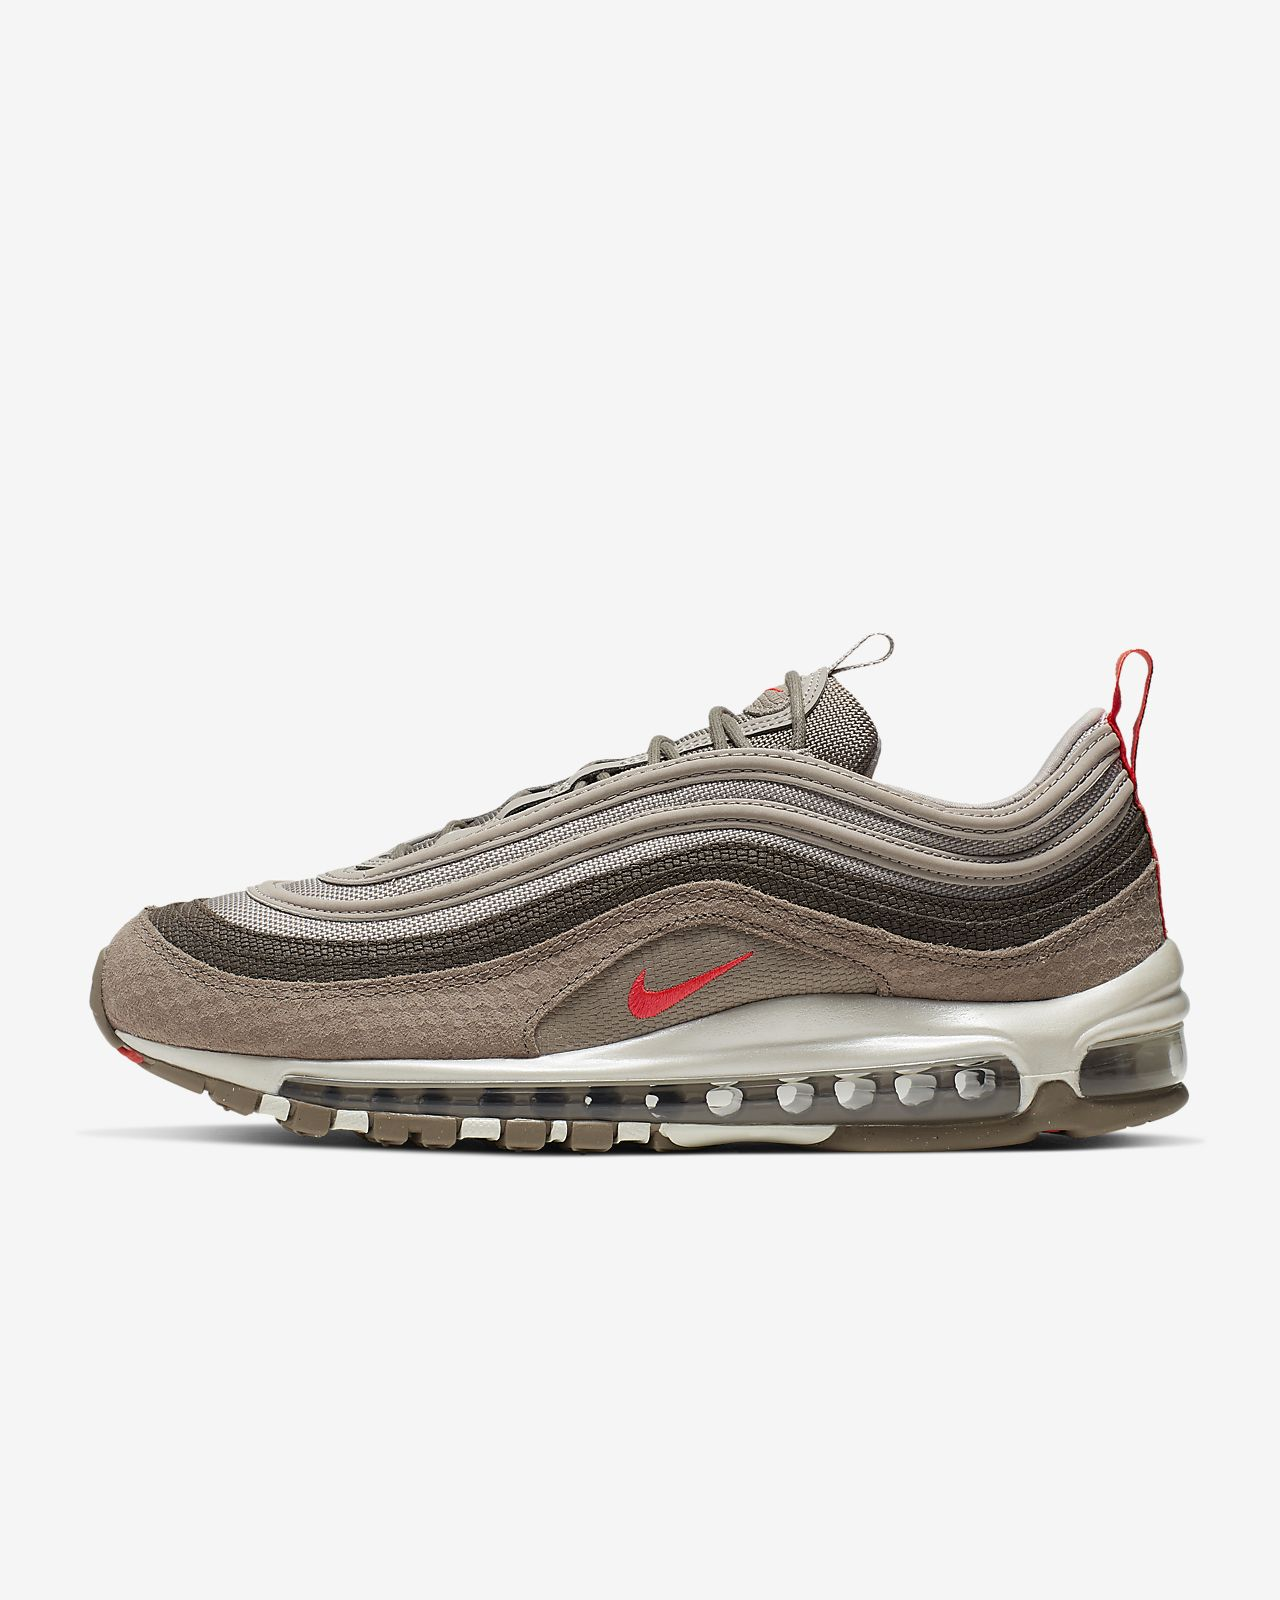 37cd8c2667160 Nike Air Max 97 Premium Men's Shoe. Nike.com